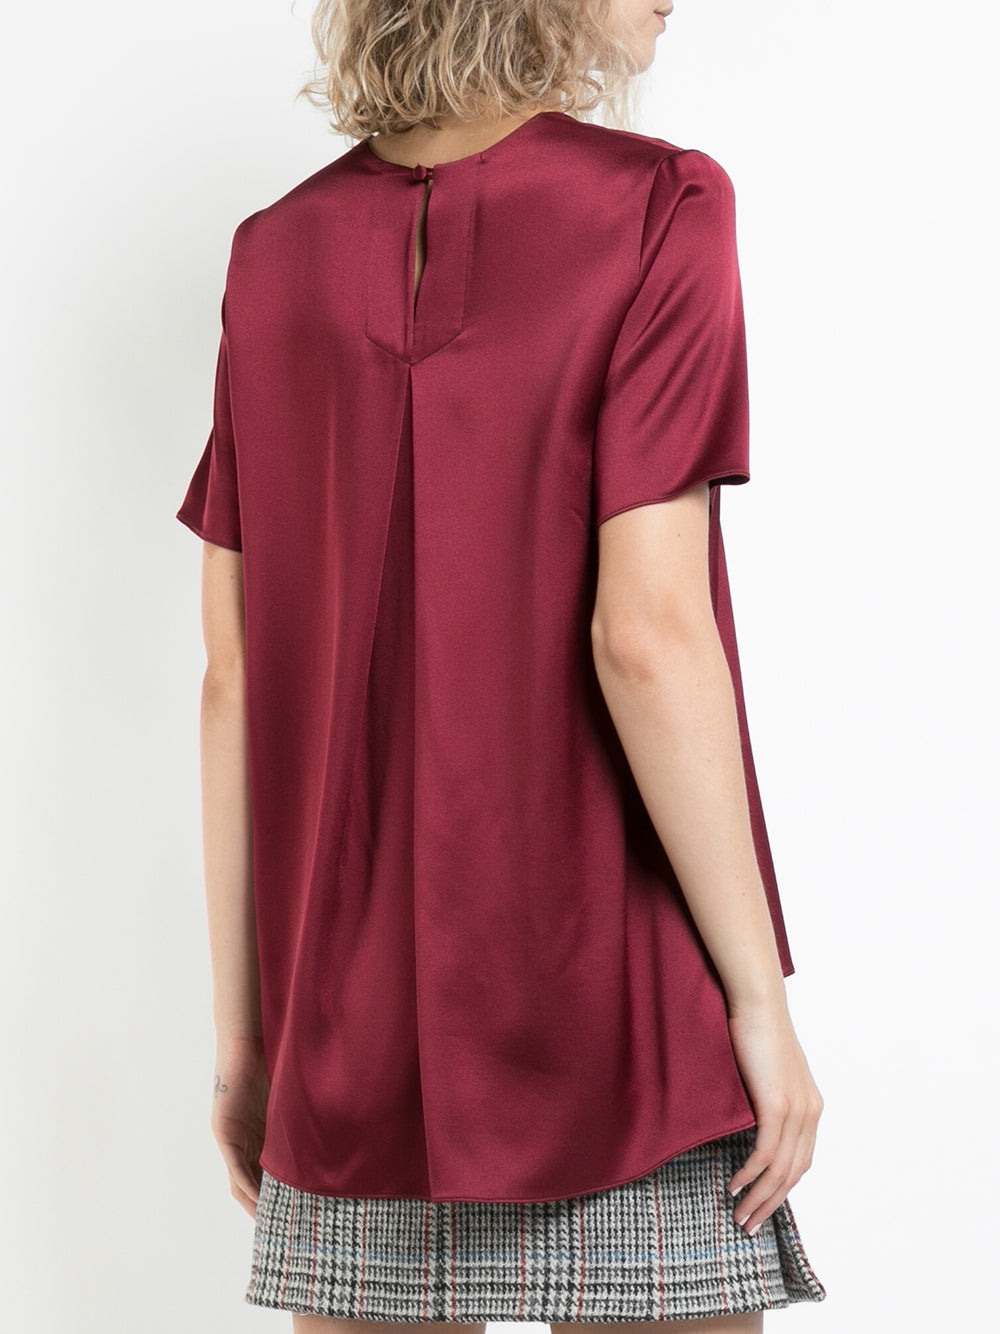 SILK CHARMEUSE SHORT SLEEVE T-SHIRT